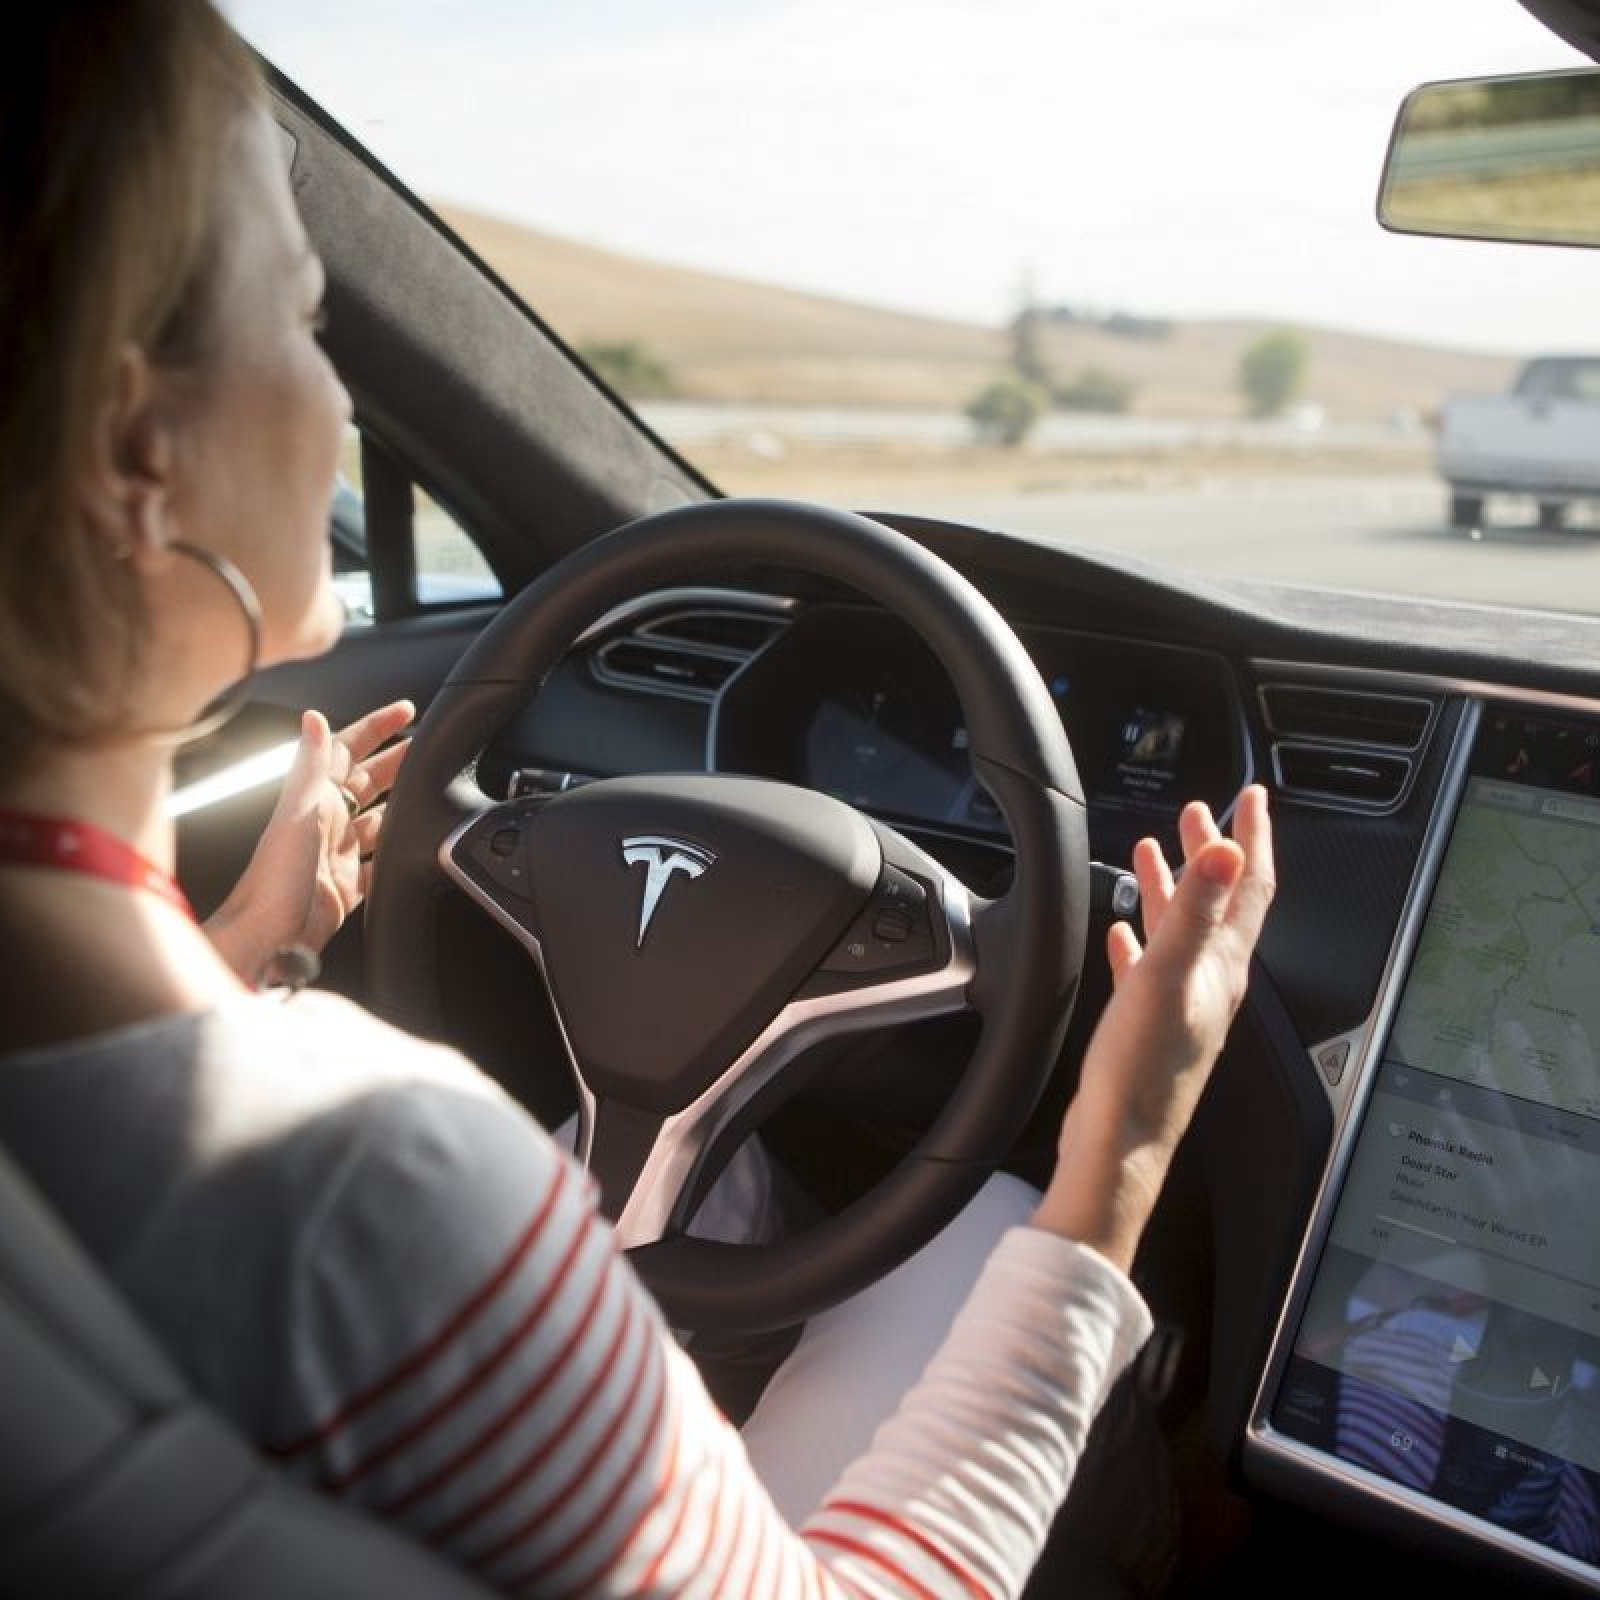 What Happens When You Take Your Hands Off the Wheel of a Tesla Car in 'Autopilot' Mode?